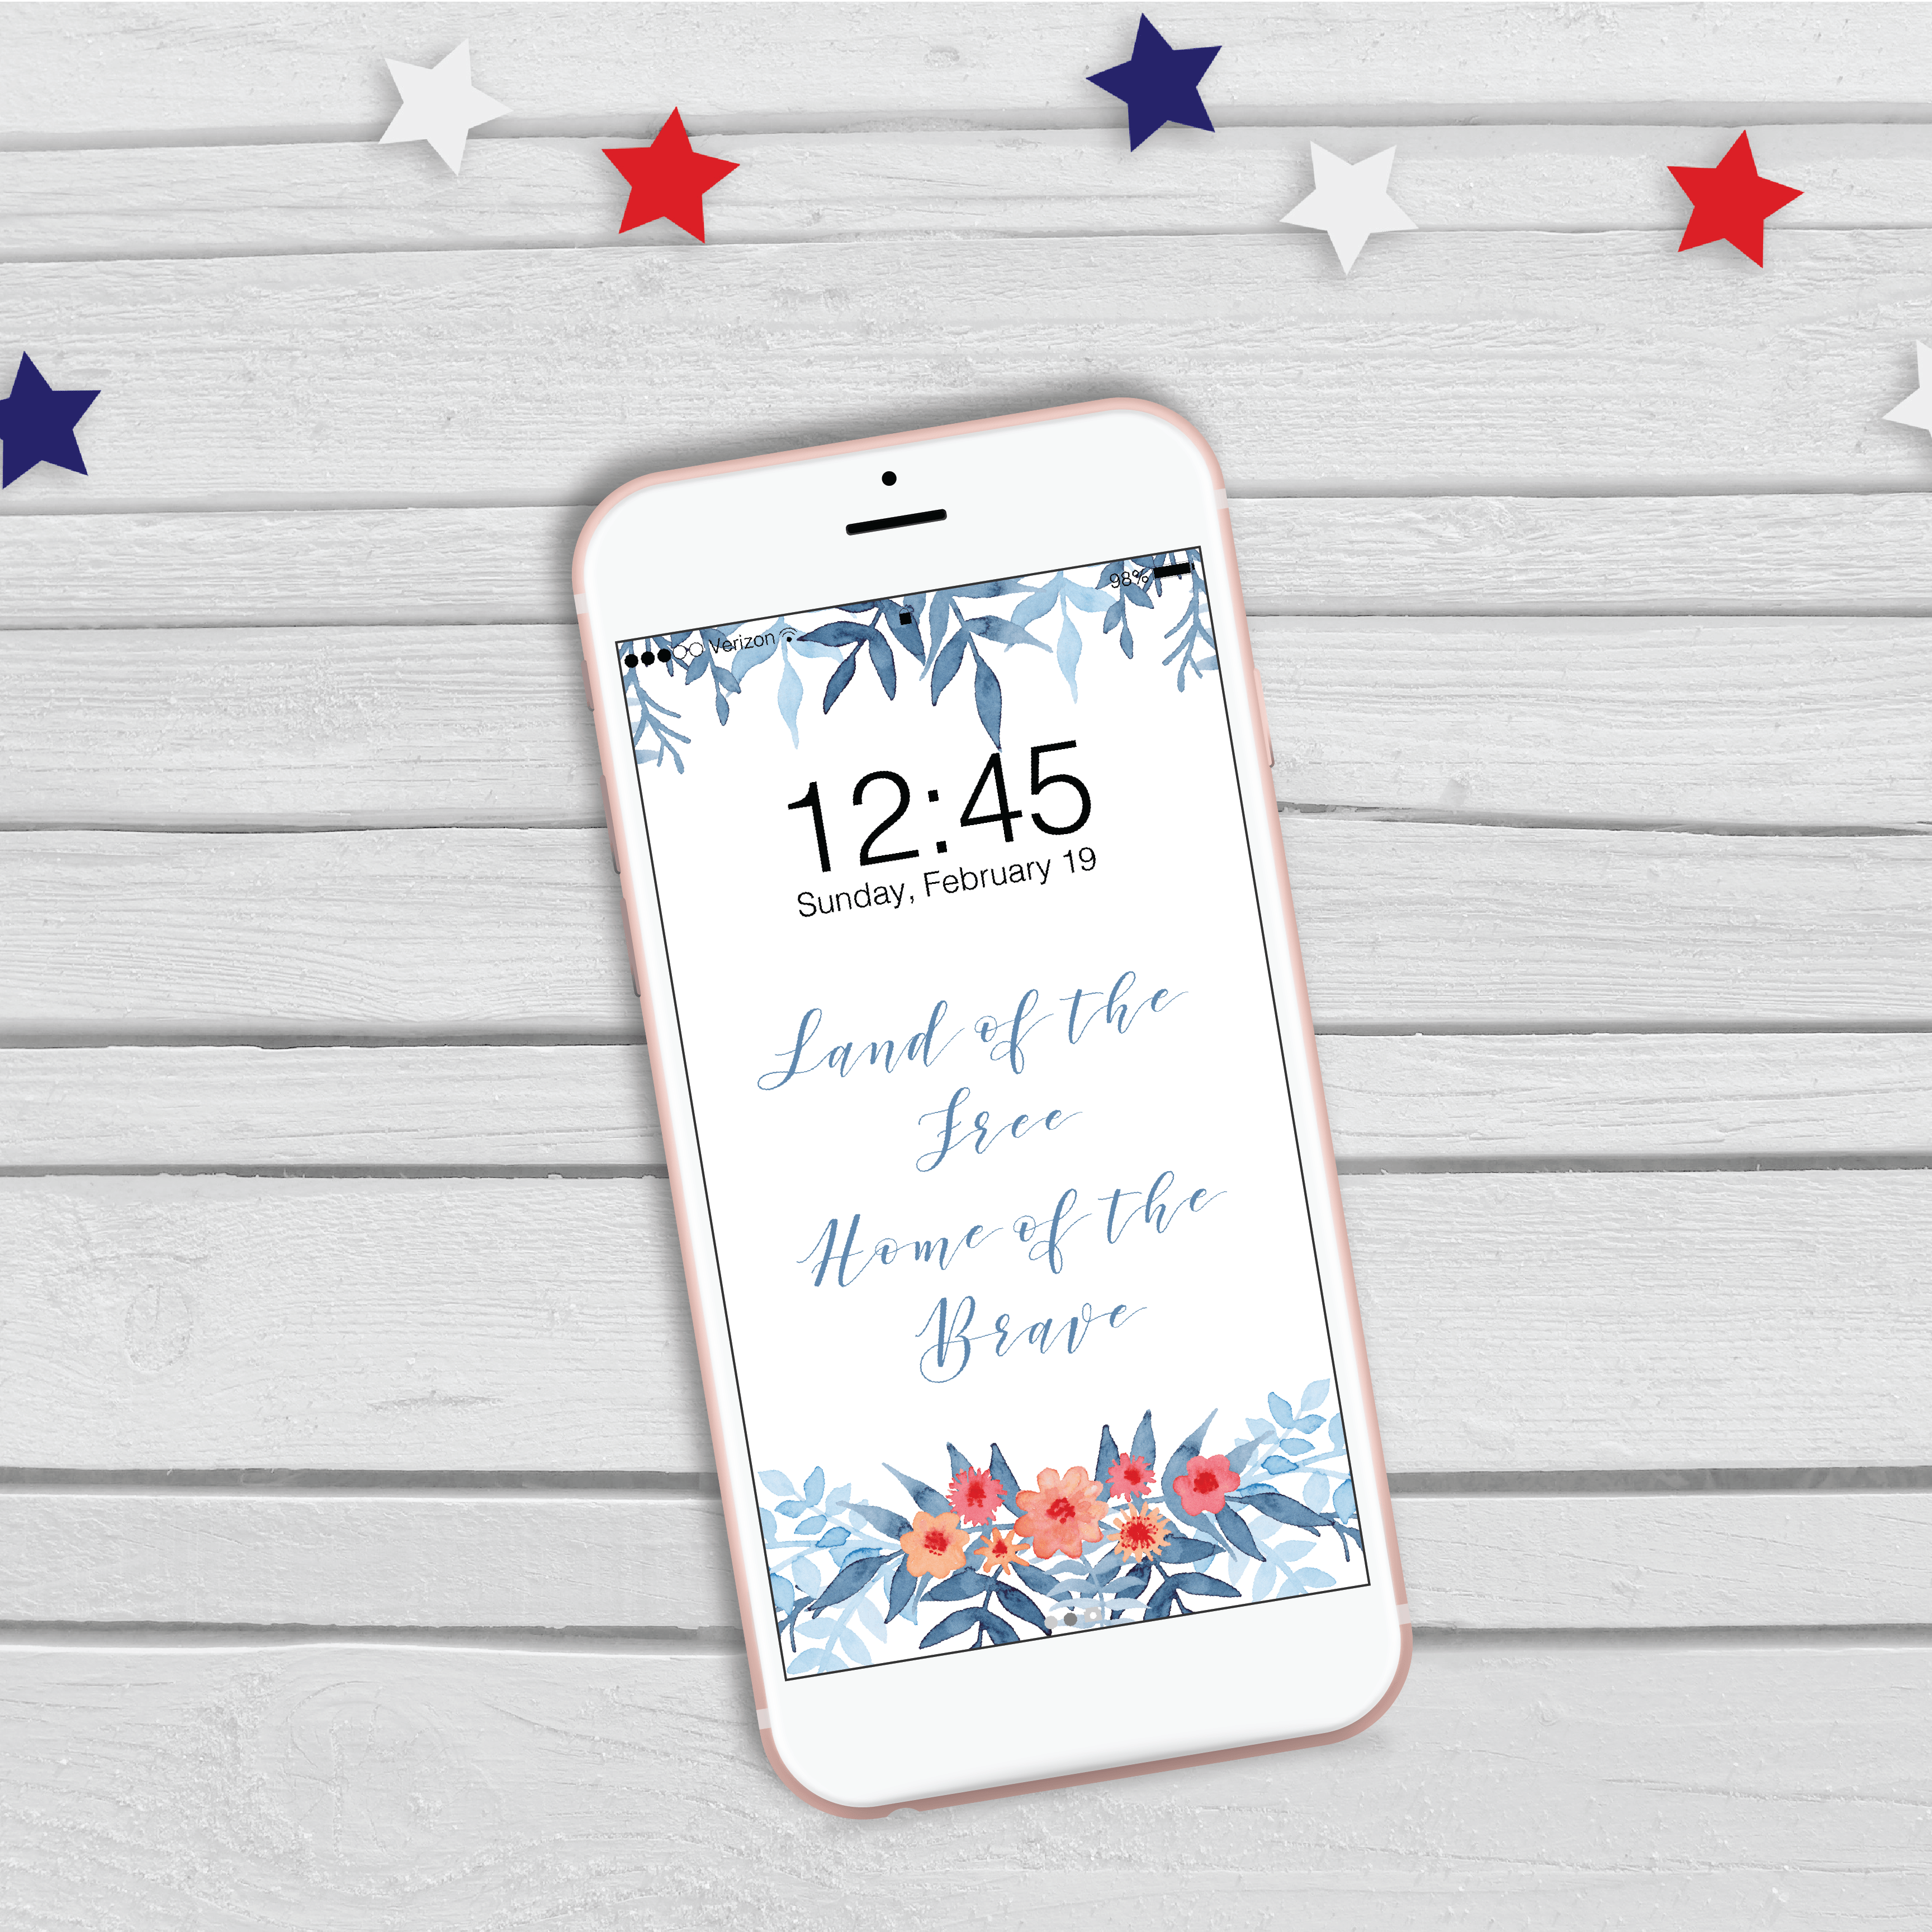 Patriotic Phone Wallpaper Freebie – Weekly Inspiration